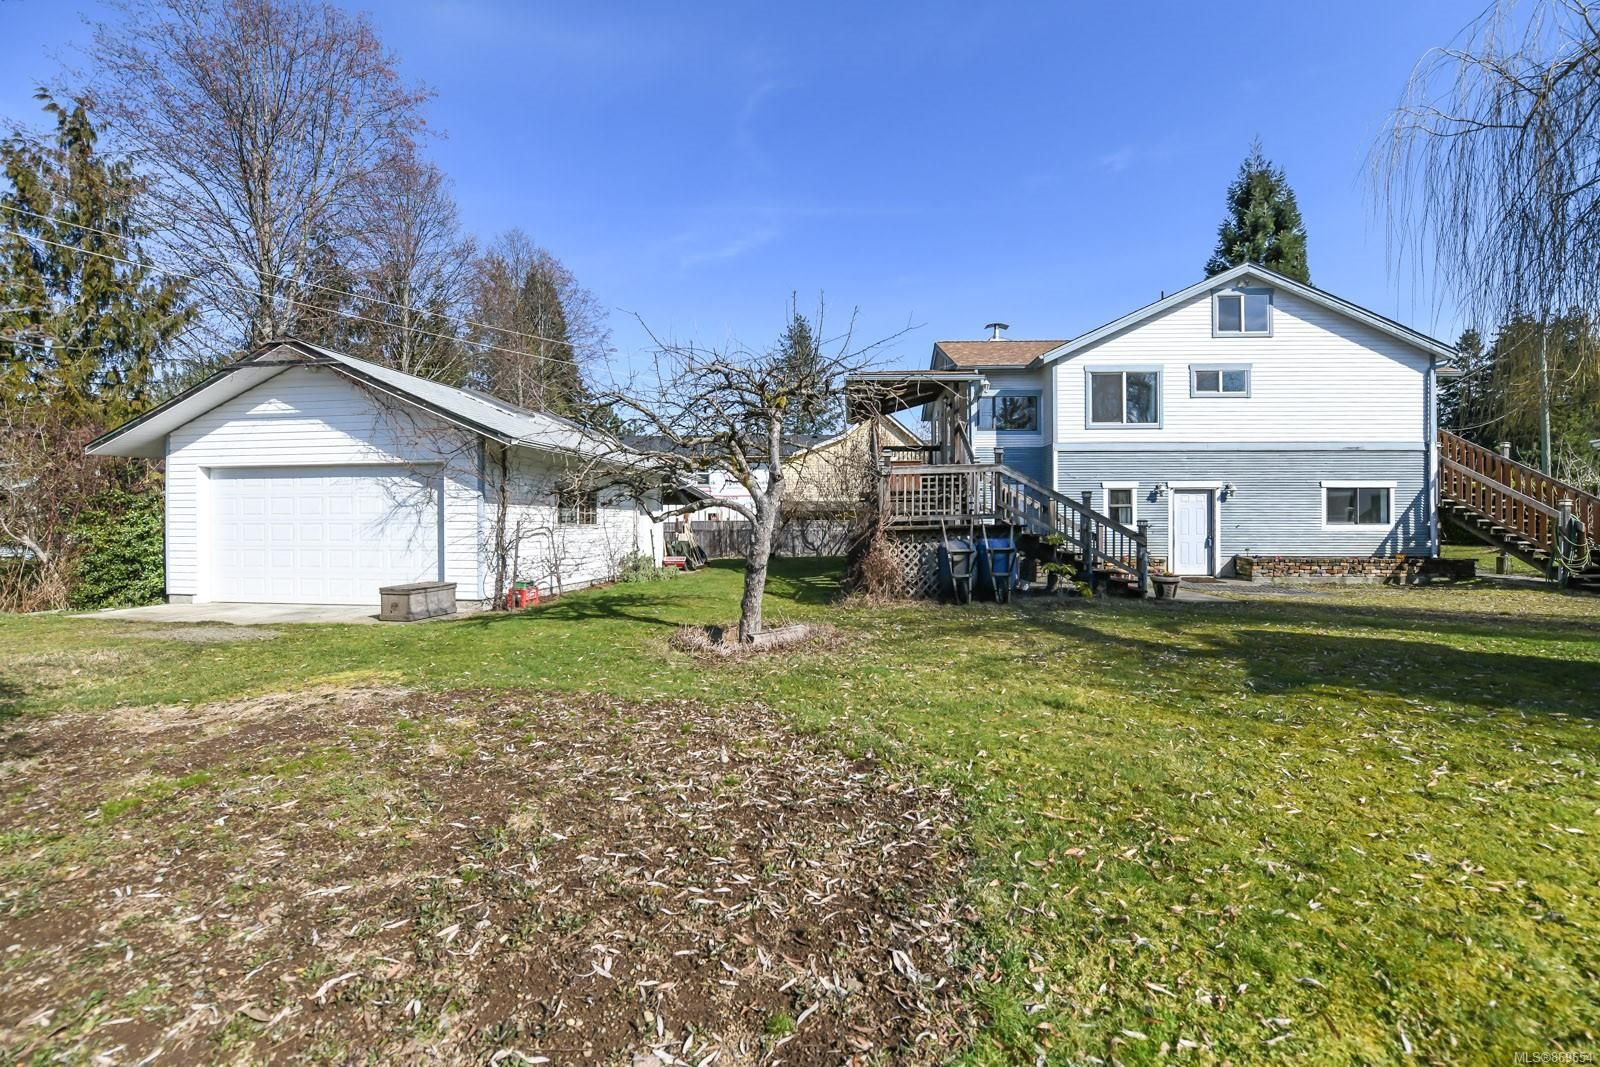 Photo 32: Photos: 4712 Cumberland Rd in : CV Cumberland House for sale (Comox Valley)  : MLS®# 869654